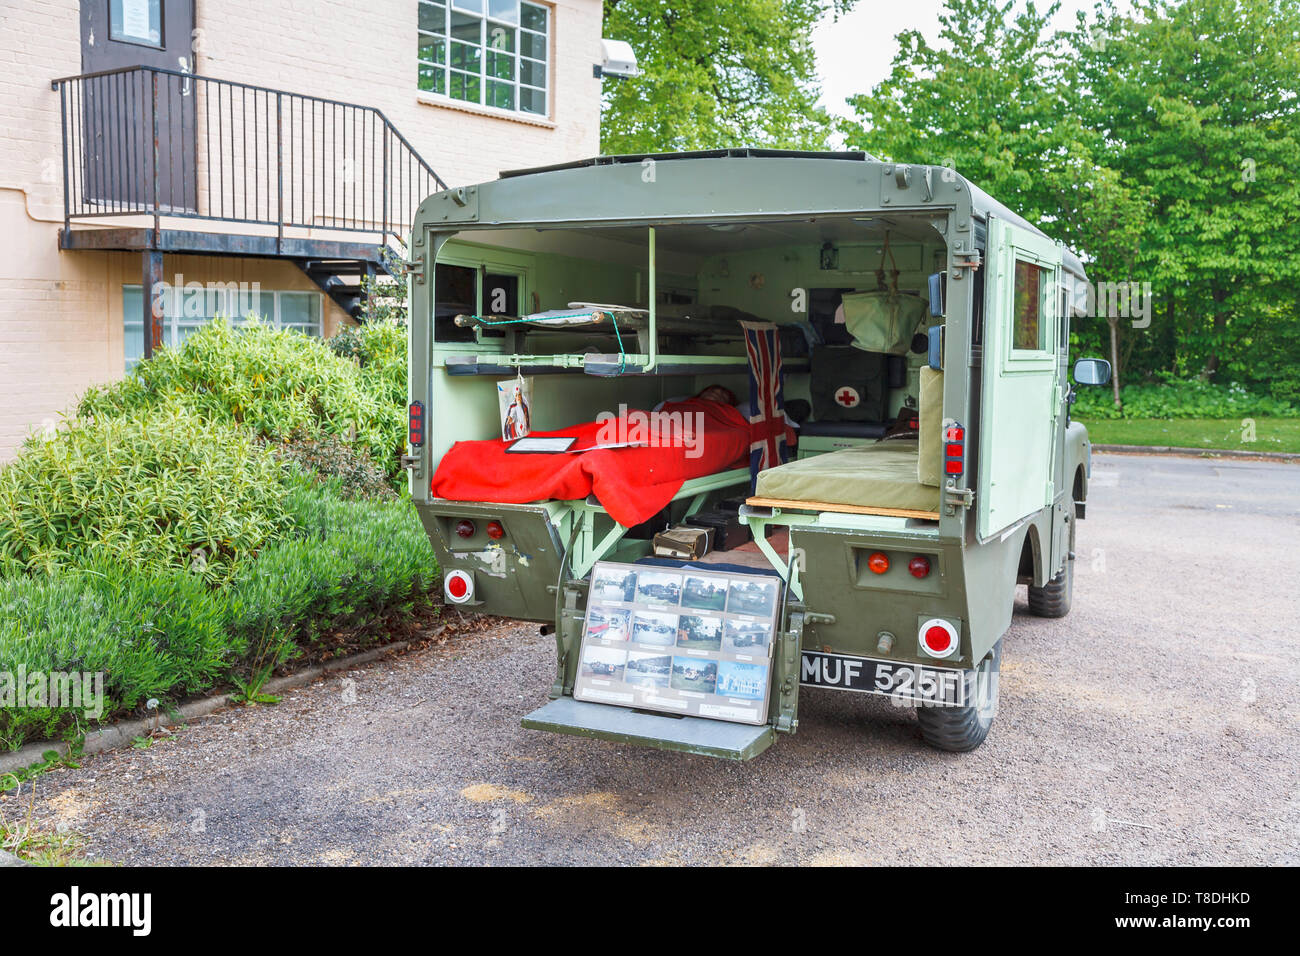 Vintage ambulance outside the Science & Innovation Centre at Bletchley Park, top-secret home of the World War Two Codebreakers, now a heritage museum - Stock Image